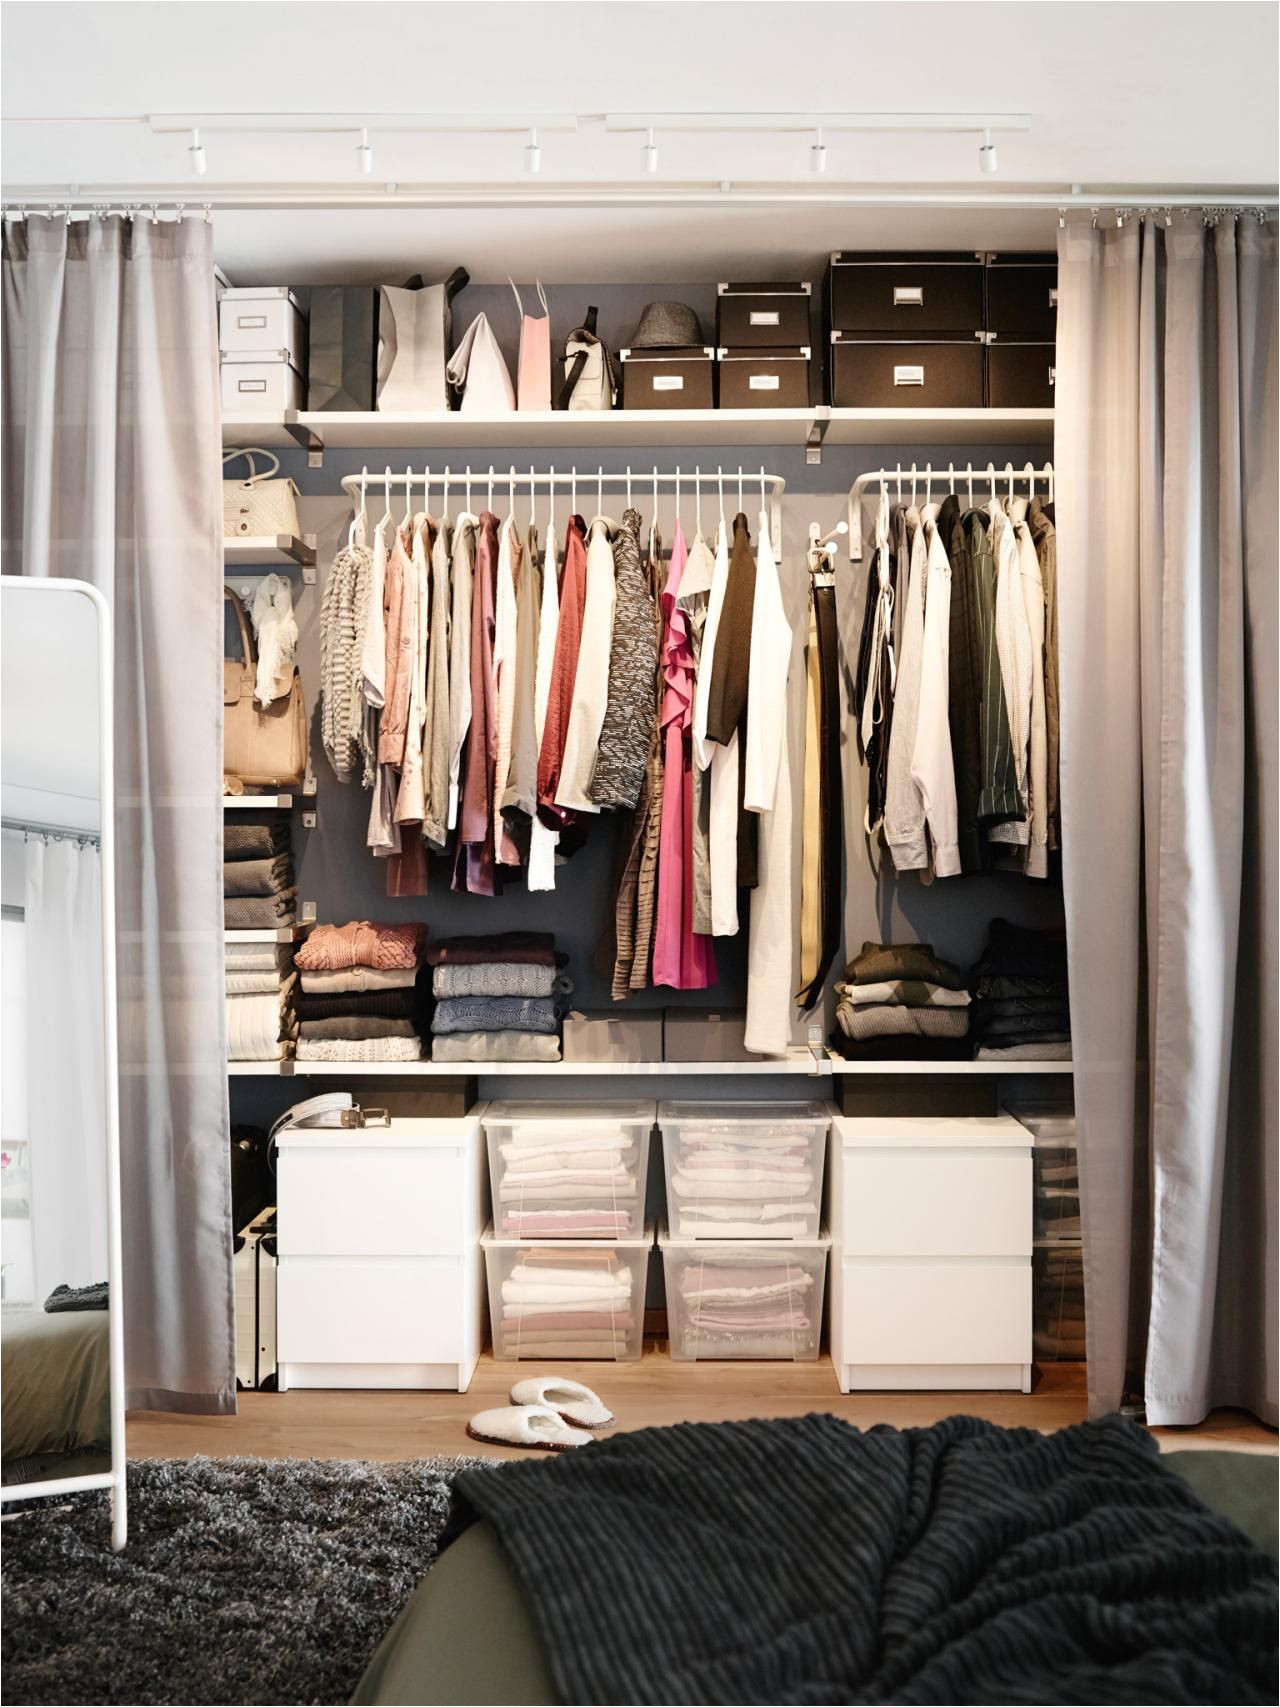 small space decorating don ts interior design styles and color schemes for home decorating hgtv